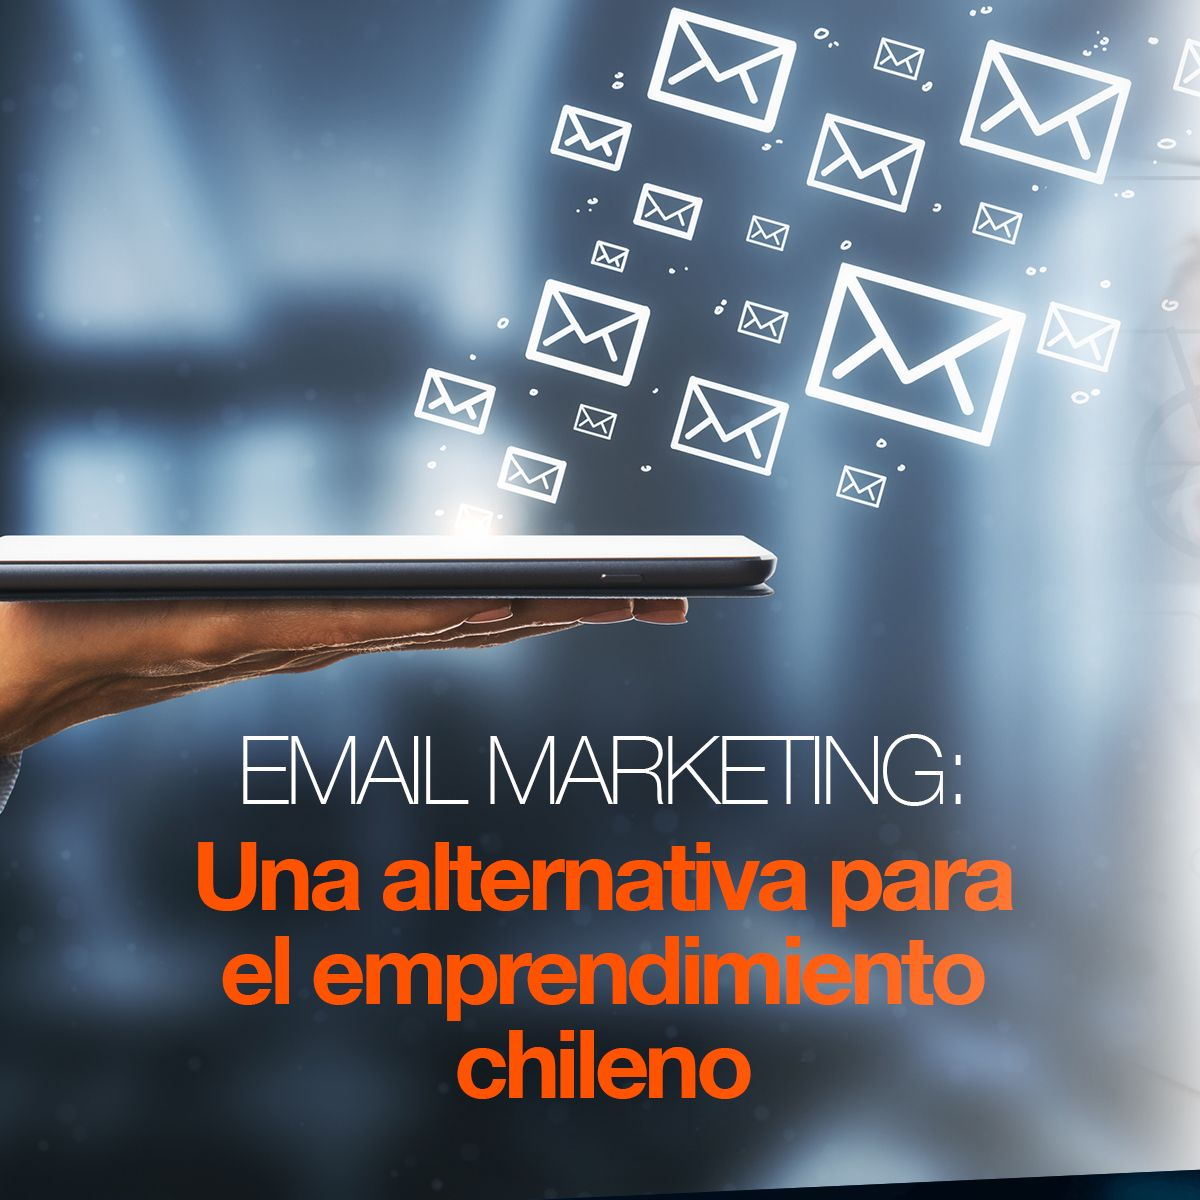 Email Marketing: Una alternativa para el emprendimiento chileno